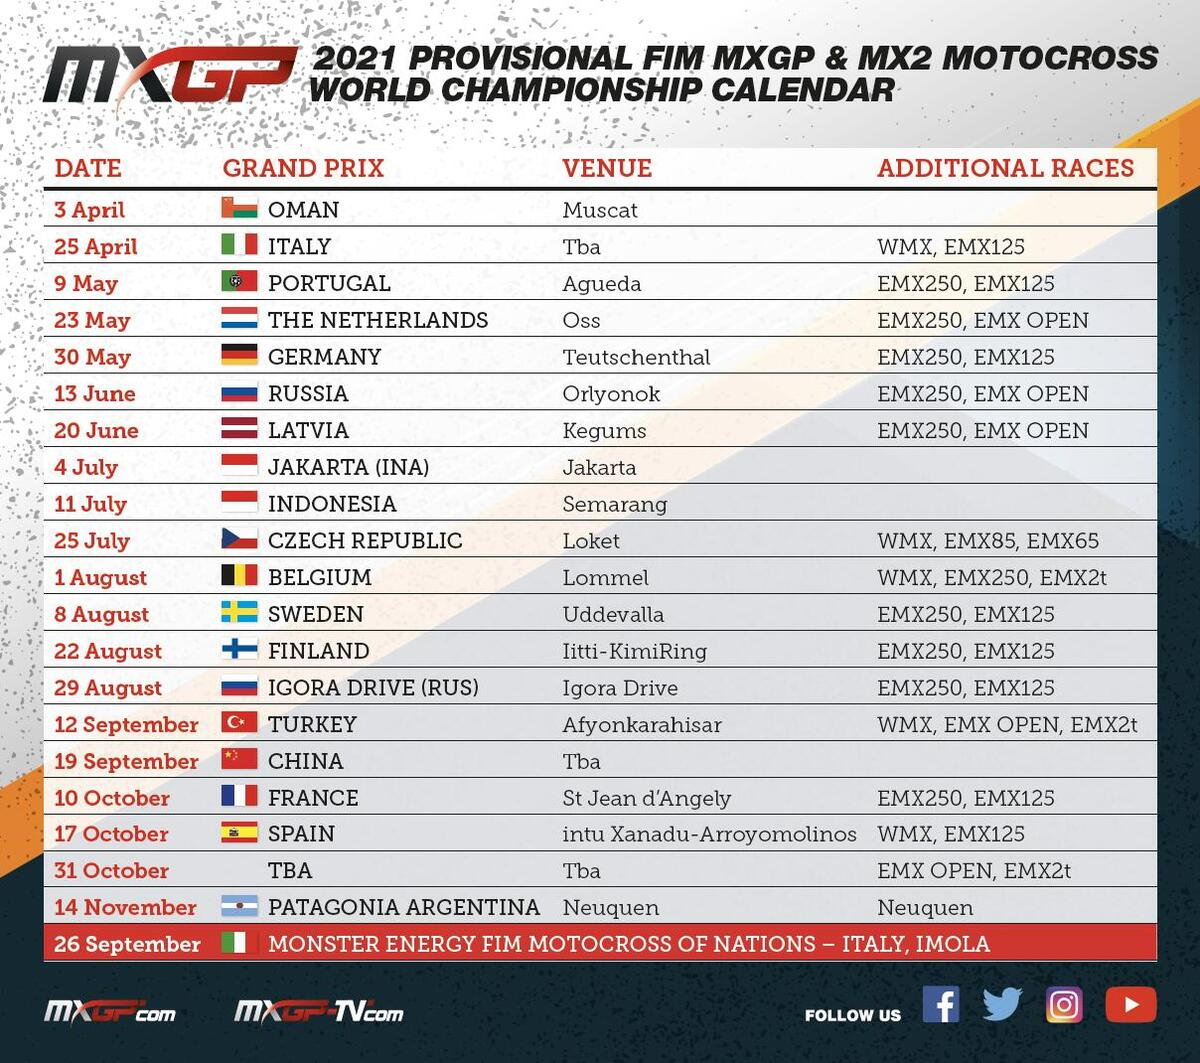 MX. Presentato il calendario 2021   Motocross   Moto.it